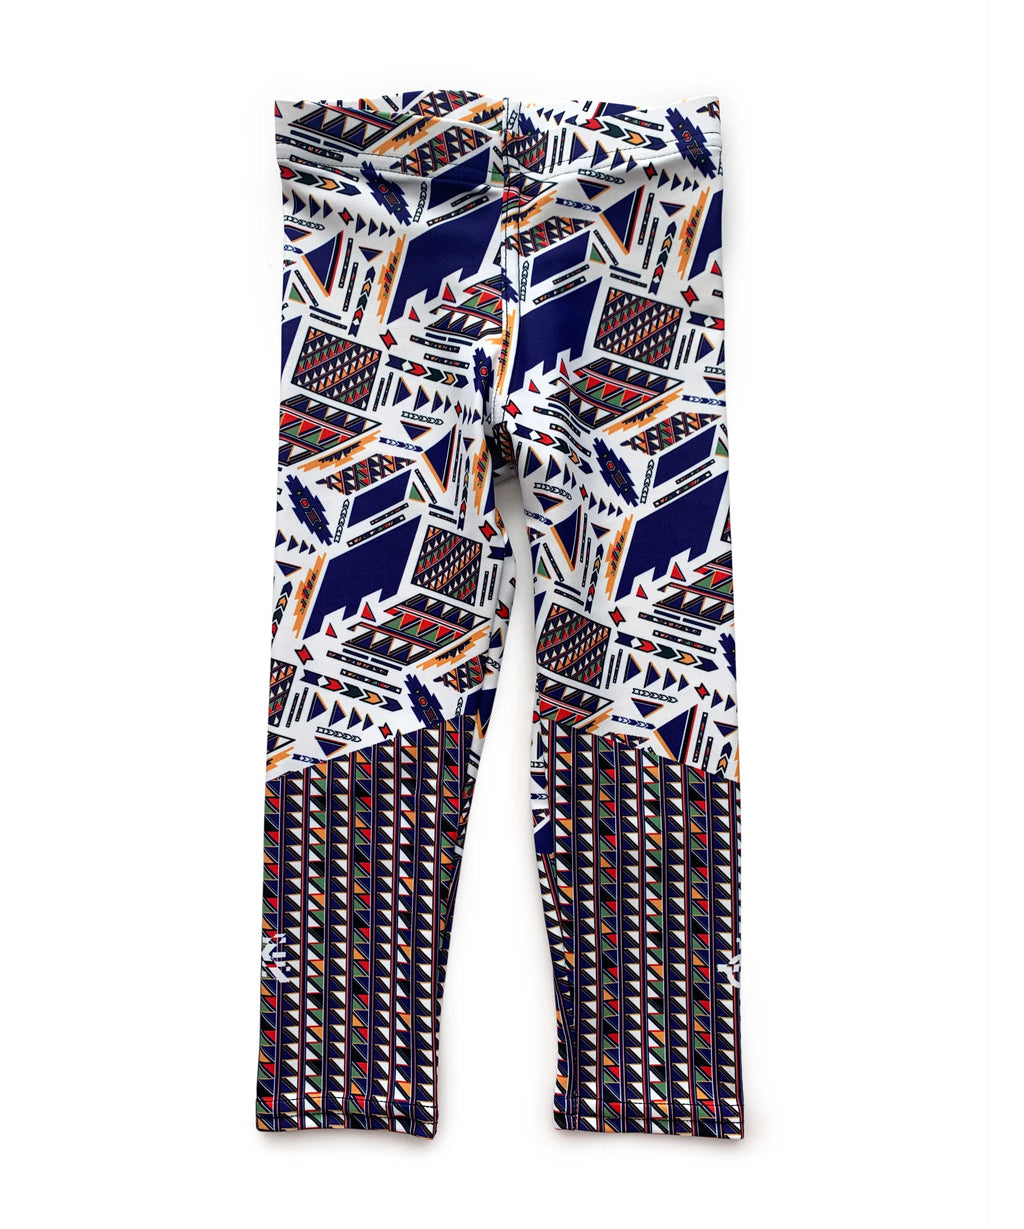 Young Yogi's Leggings